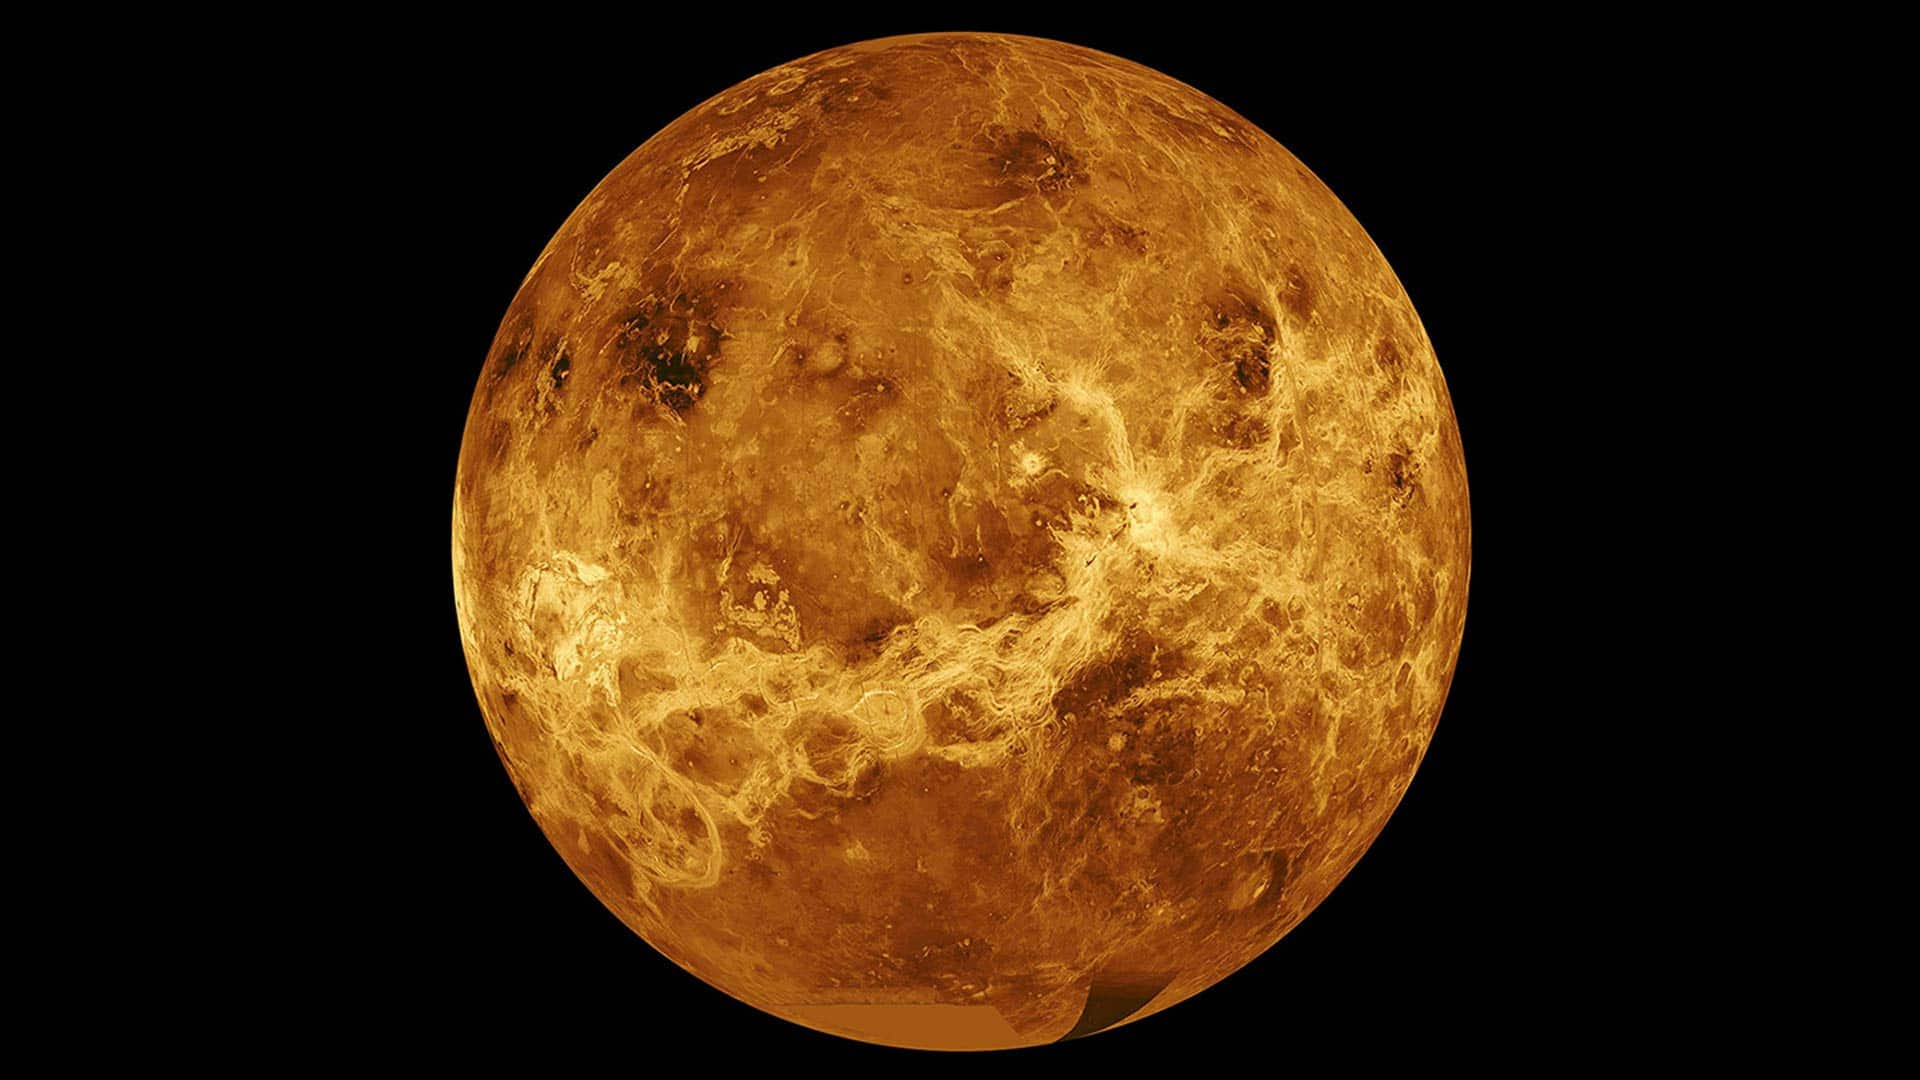 Life on Venus? Recent finding hinting at life in the clouds questioned thumbnail